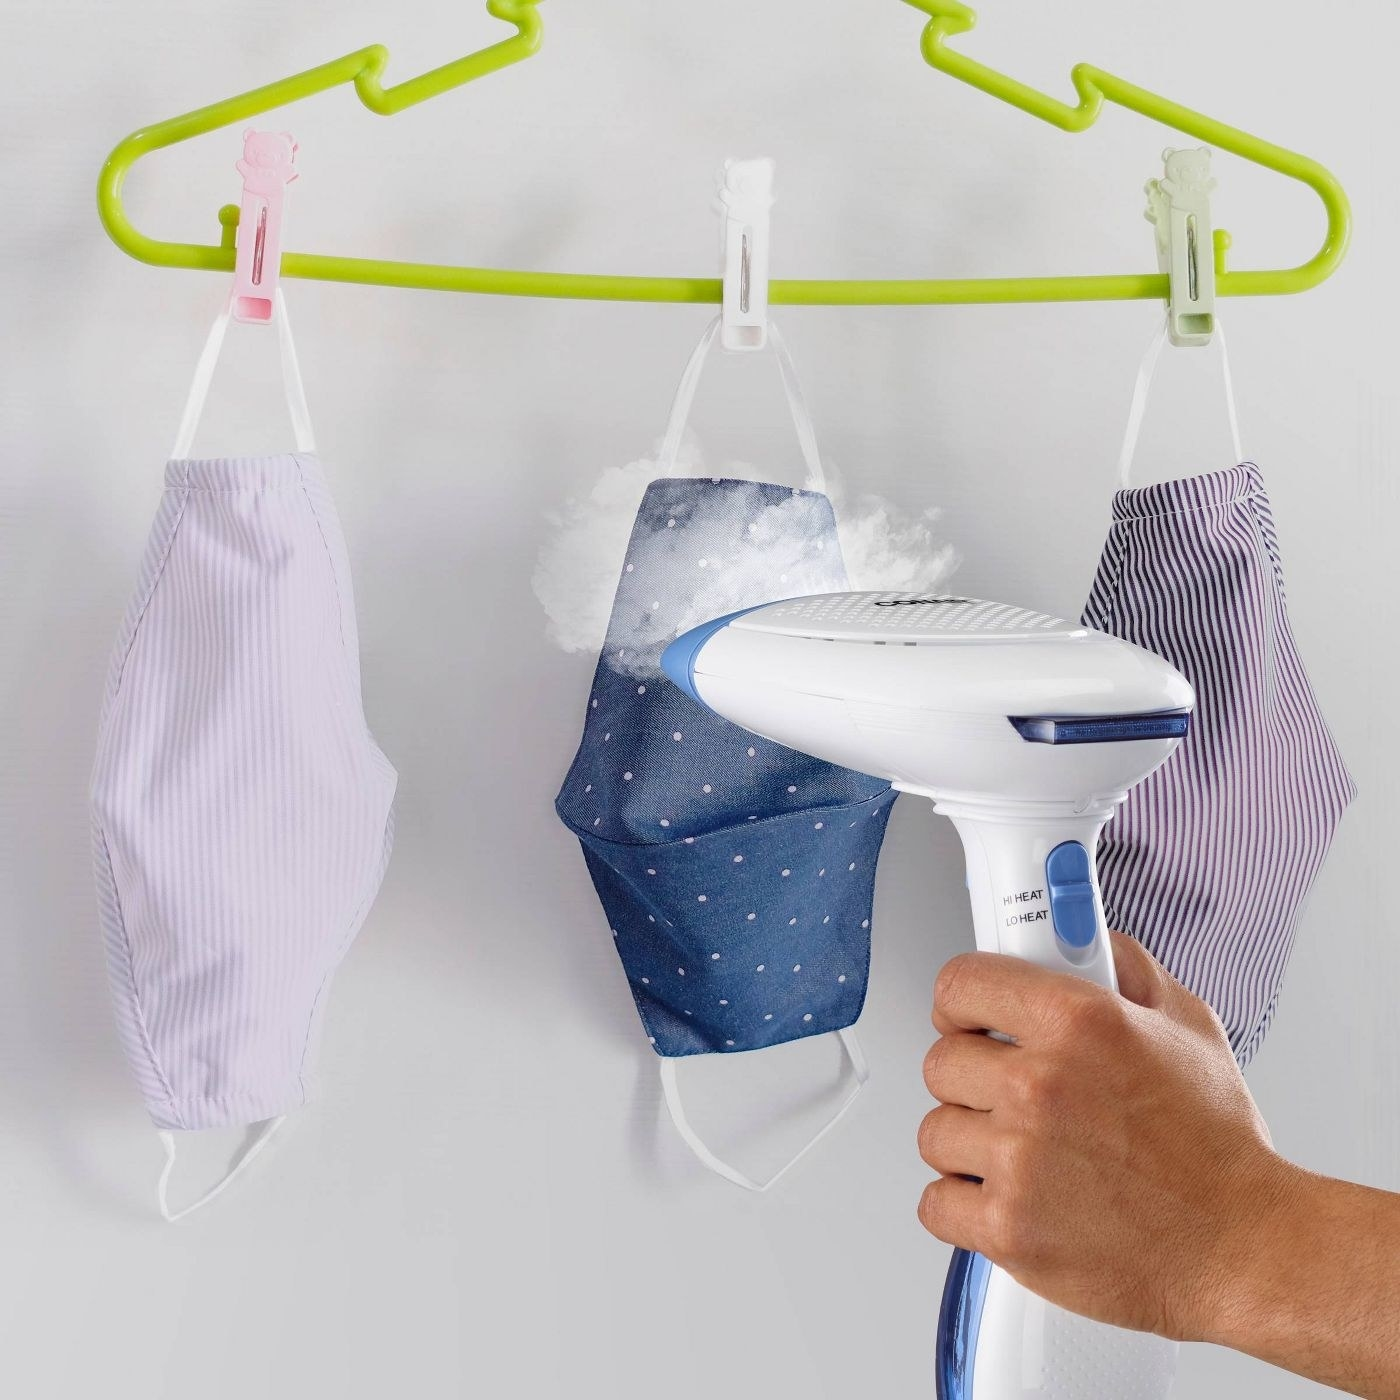 person using fabric steamer to dewrinkle a face mask